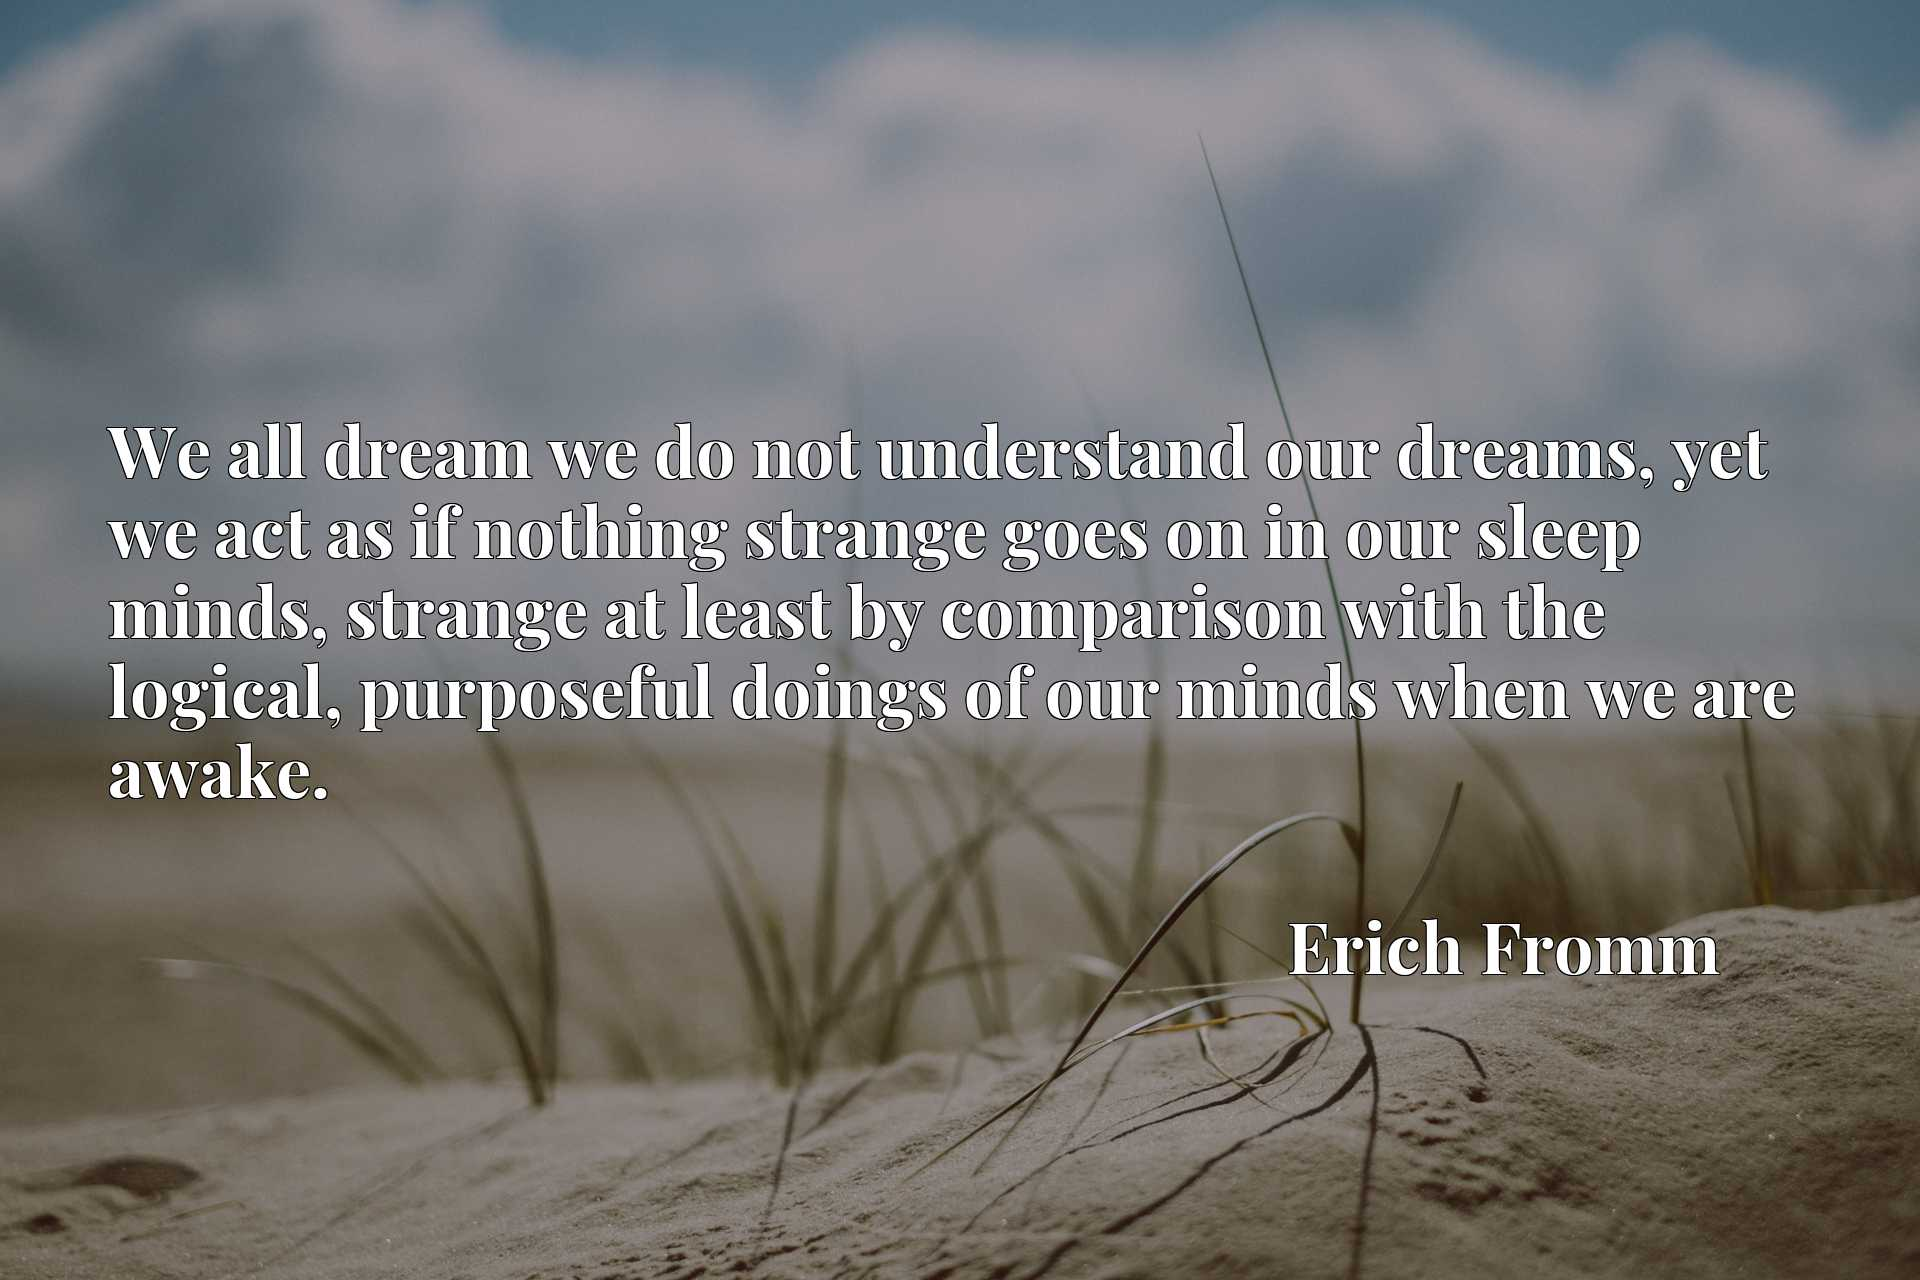 We all dream we do not understand our dreams, yet we act as if nothing strange goes on in our sleep minds, strange at least by comparison with the logical, purposeful doings of our minds when we are awake.